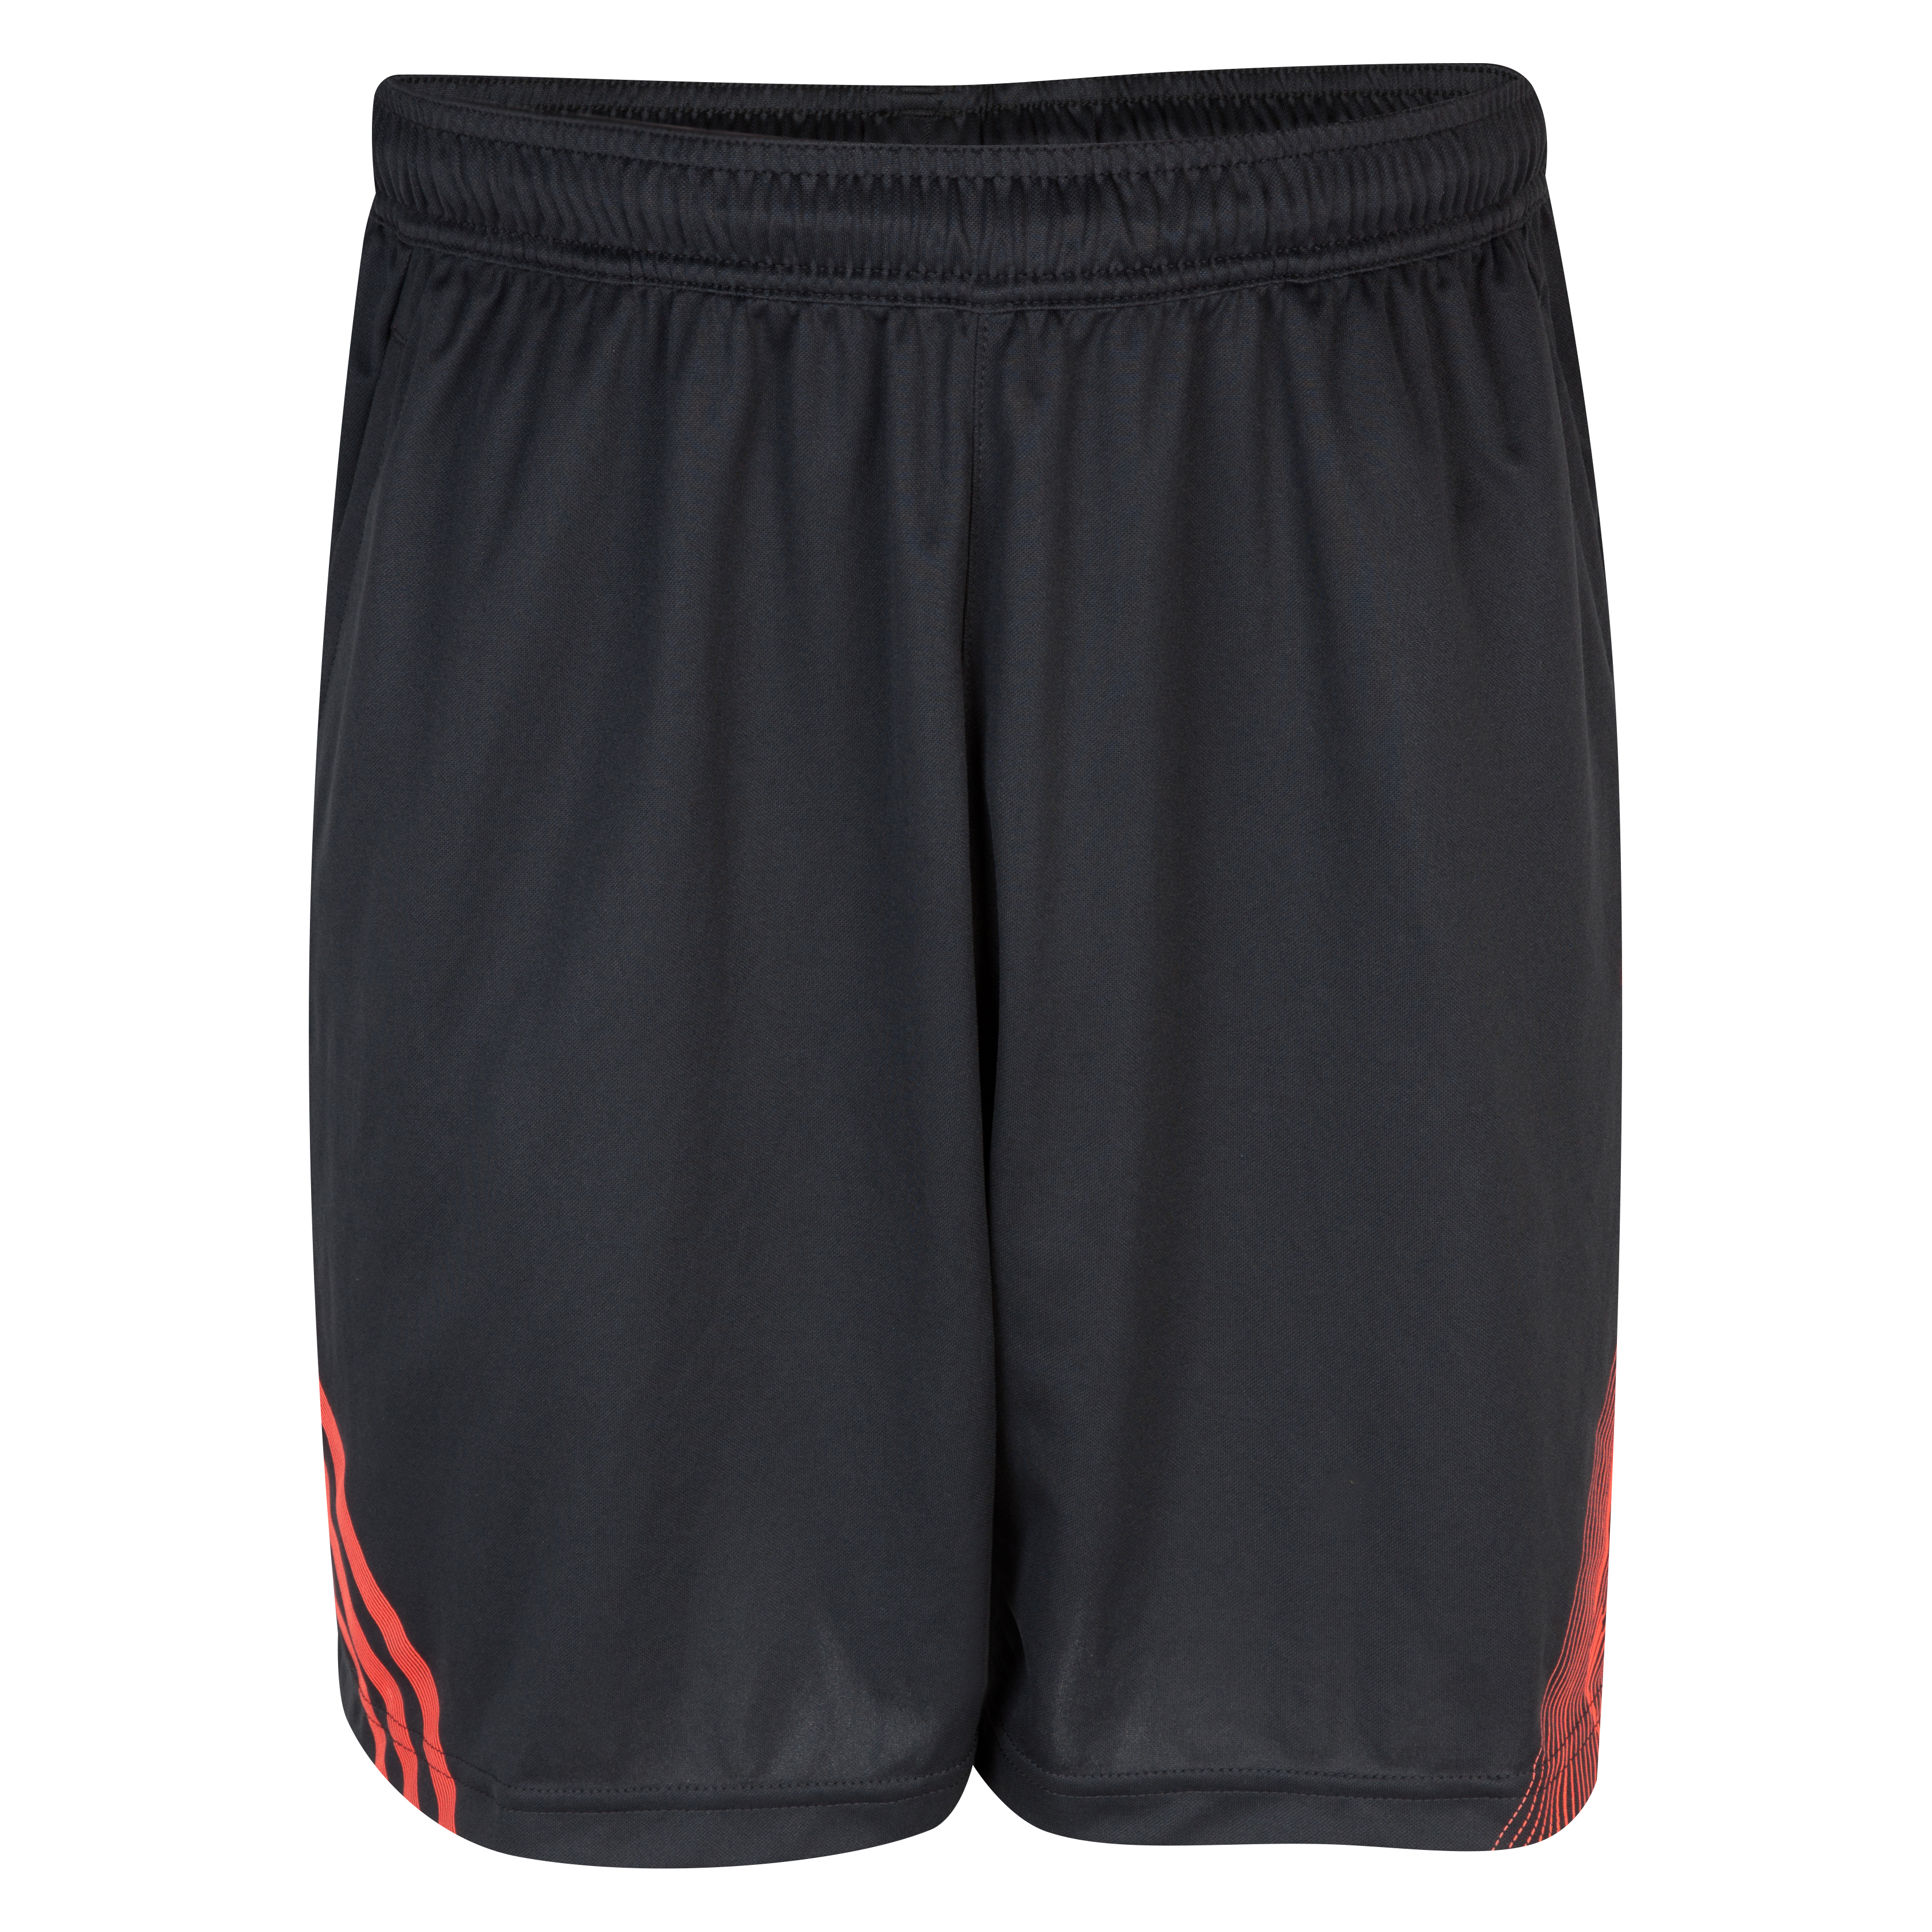 Adidas AdiZero F50 Climacool Training Short Black